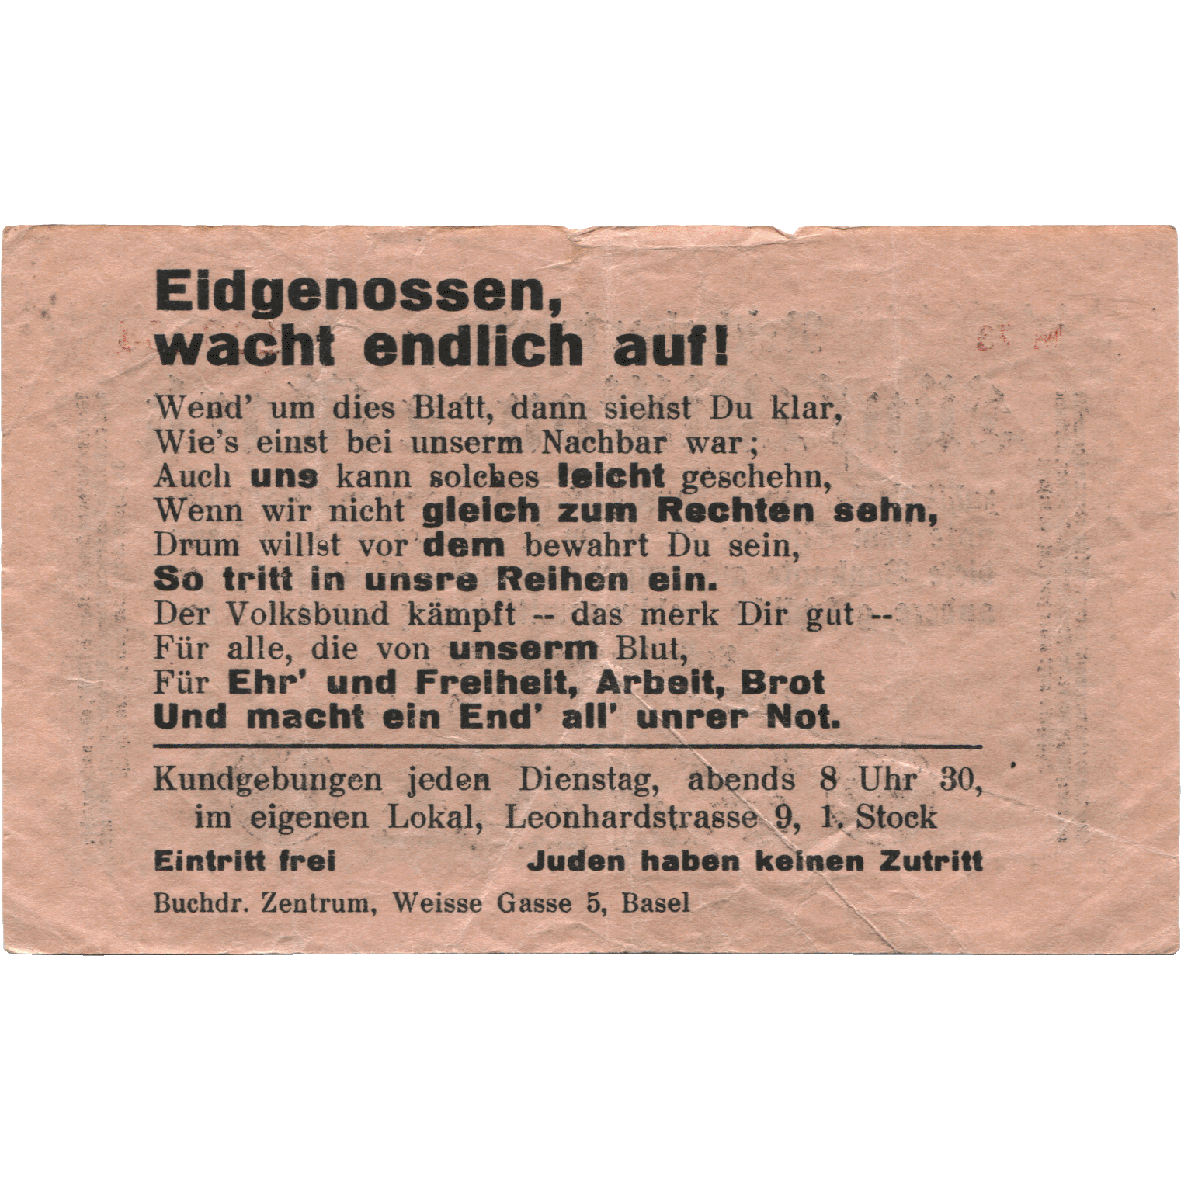 Swiss Federation, National Socialist Swiss Workers Party, Propaganda Bill «5 Million Mark» (reverse)